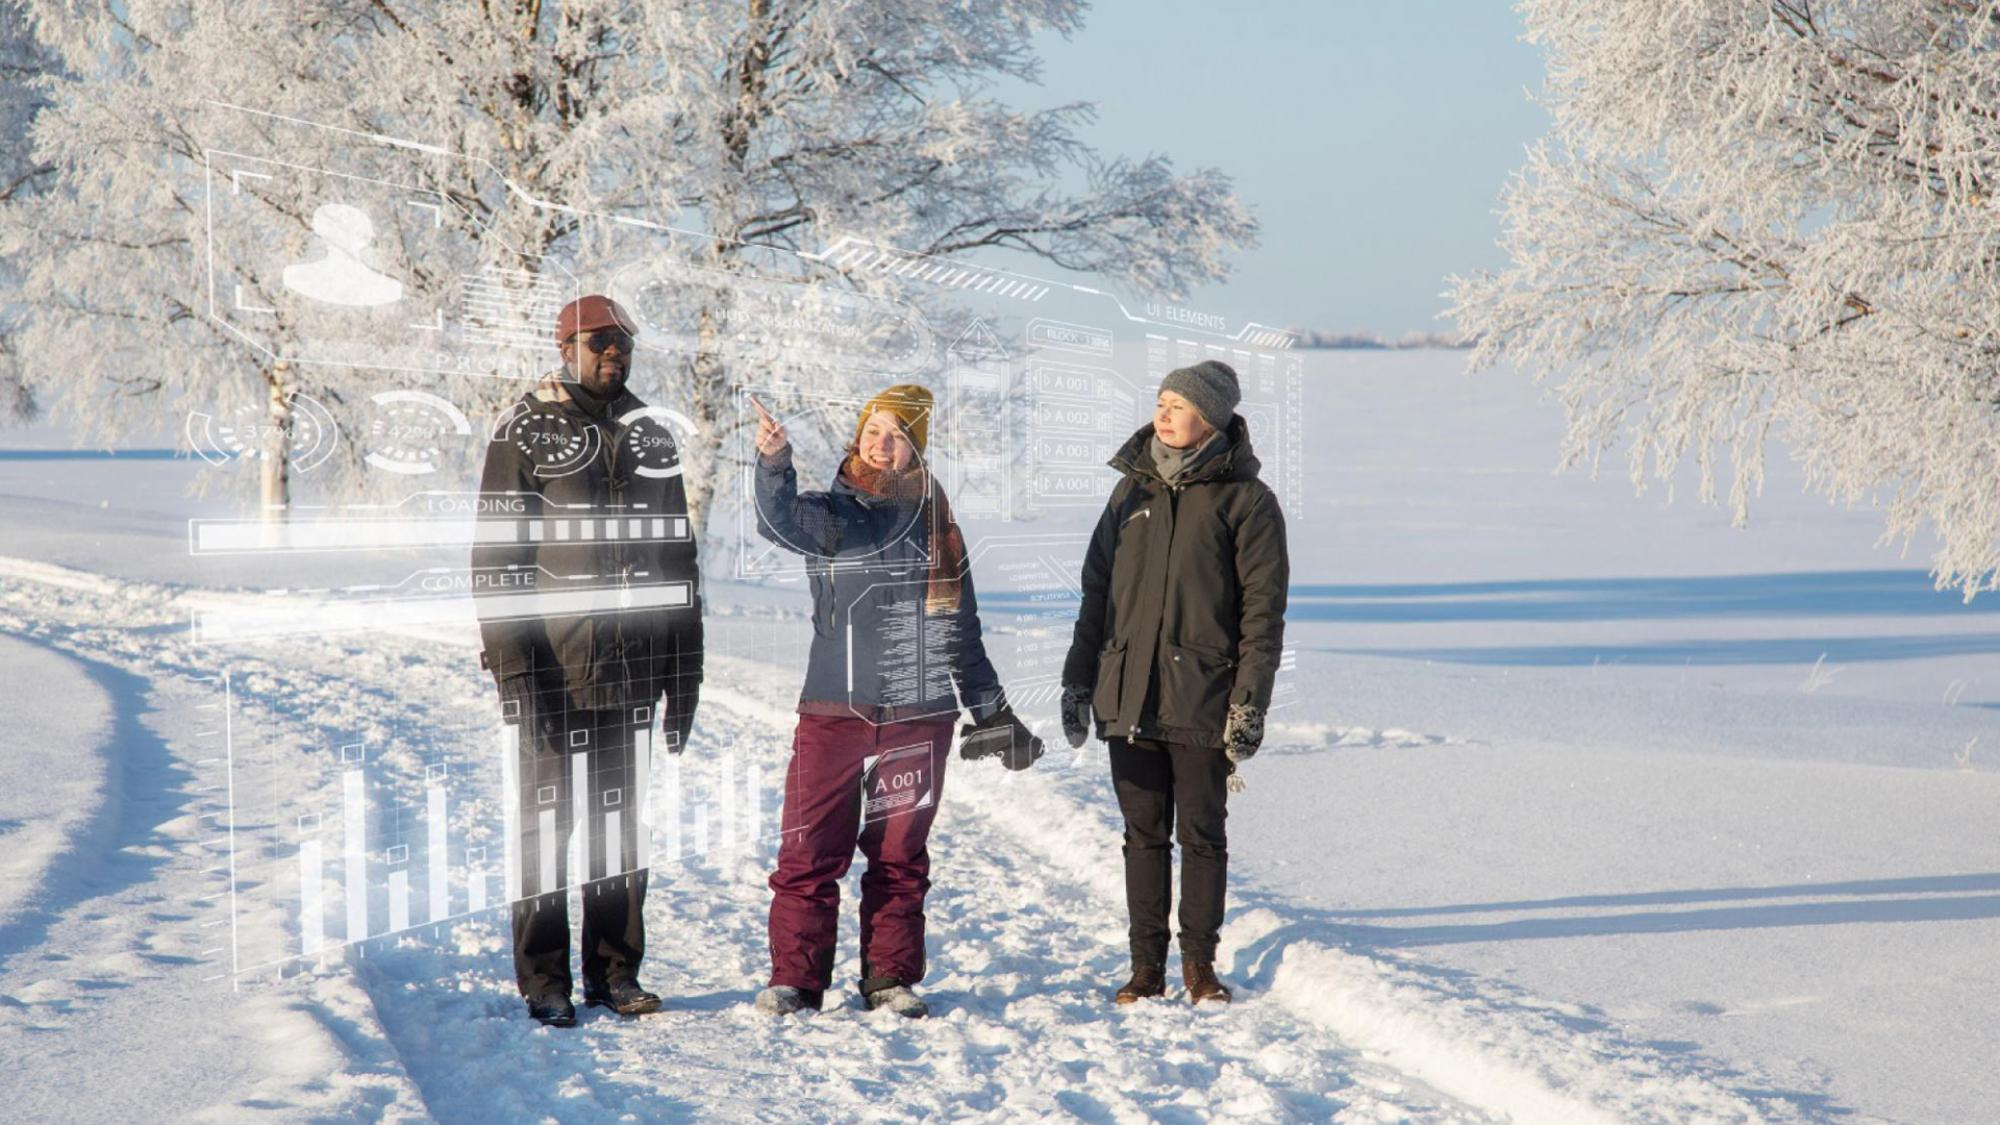 Three people discussing outside in a Northern snowy landscape.